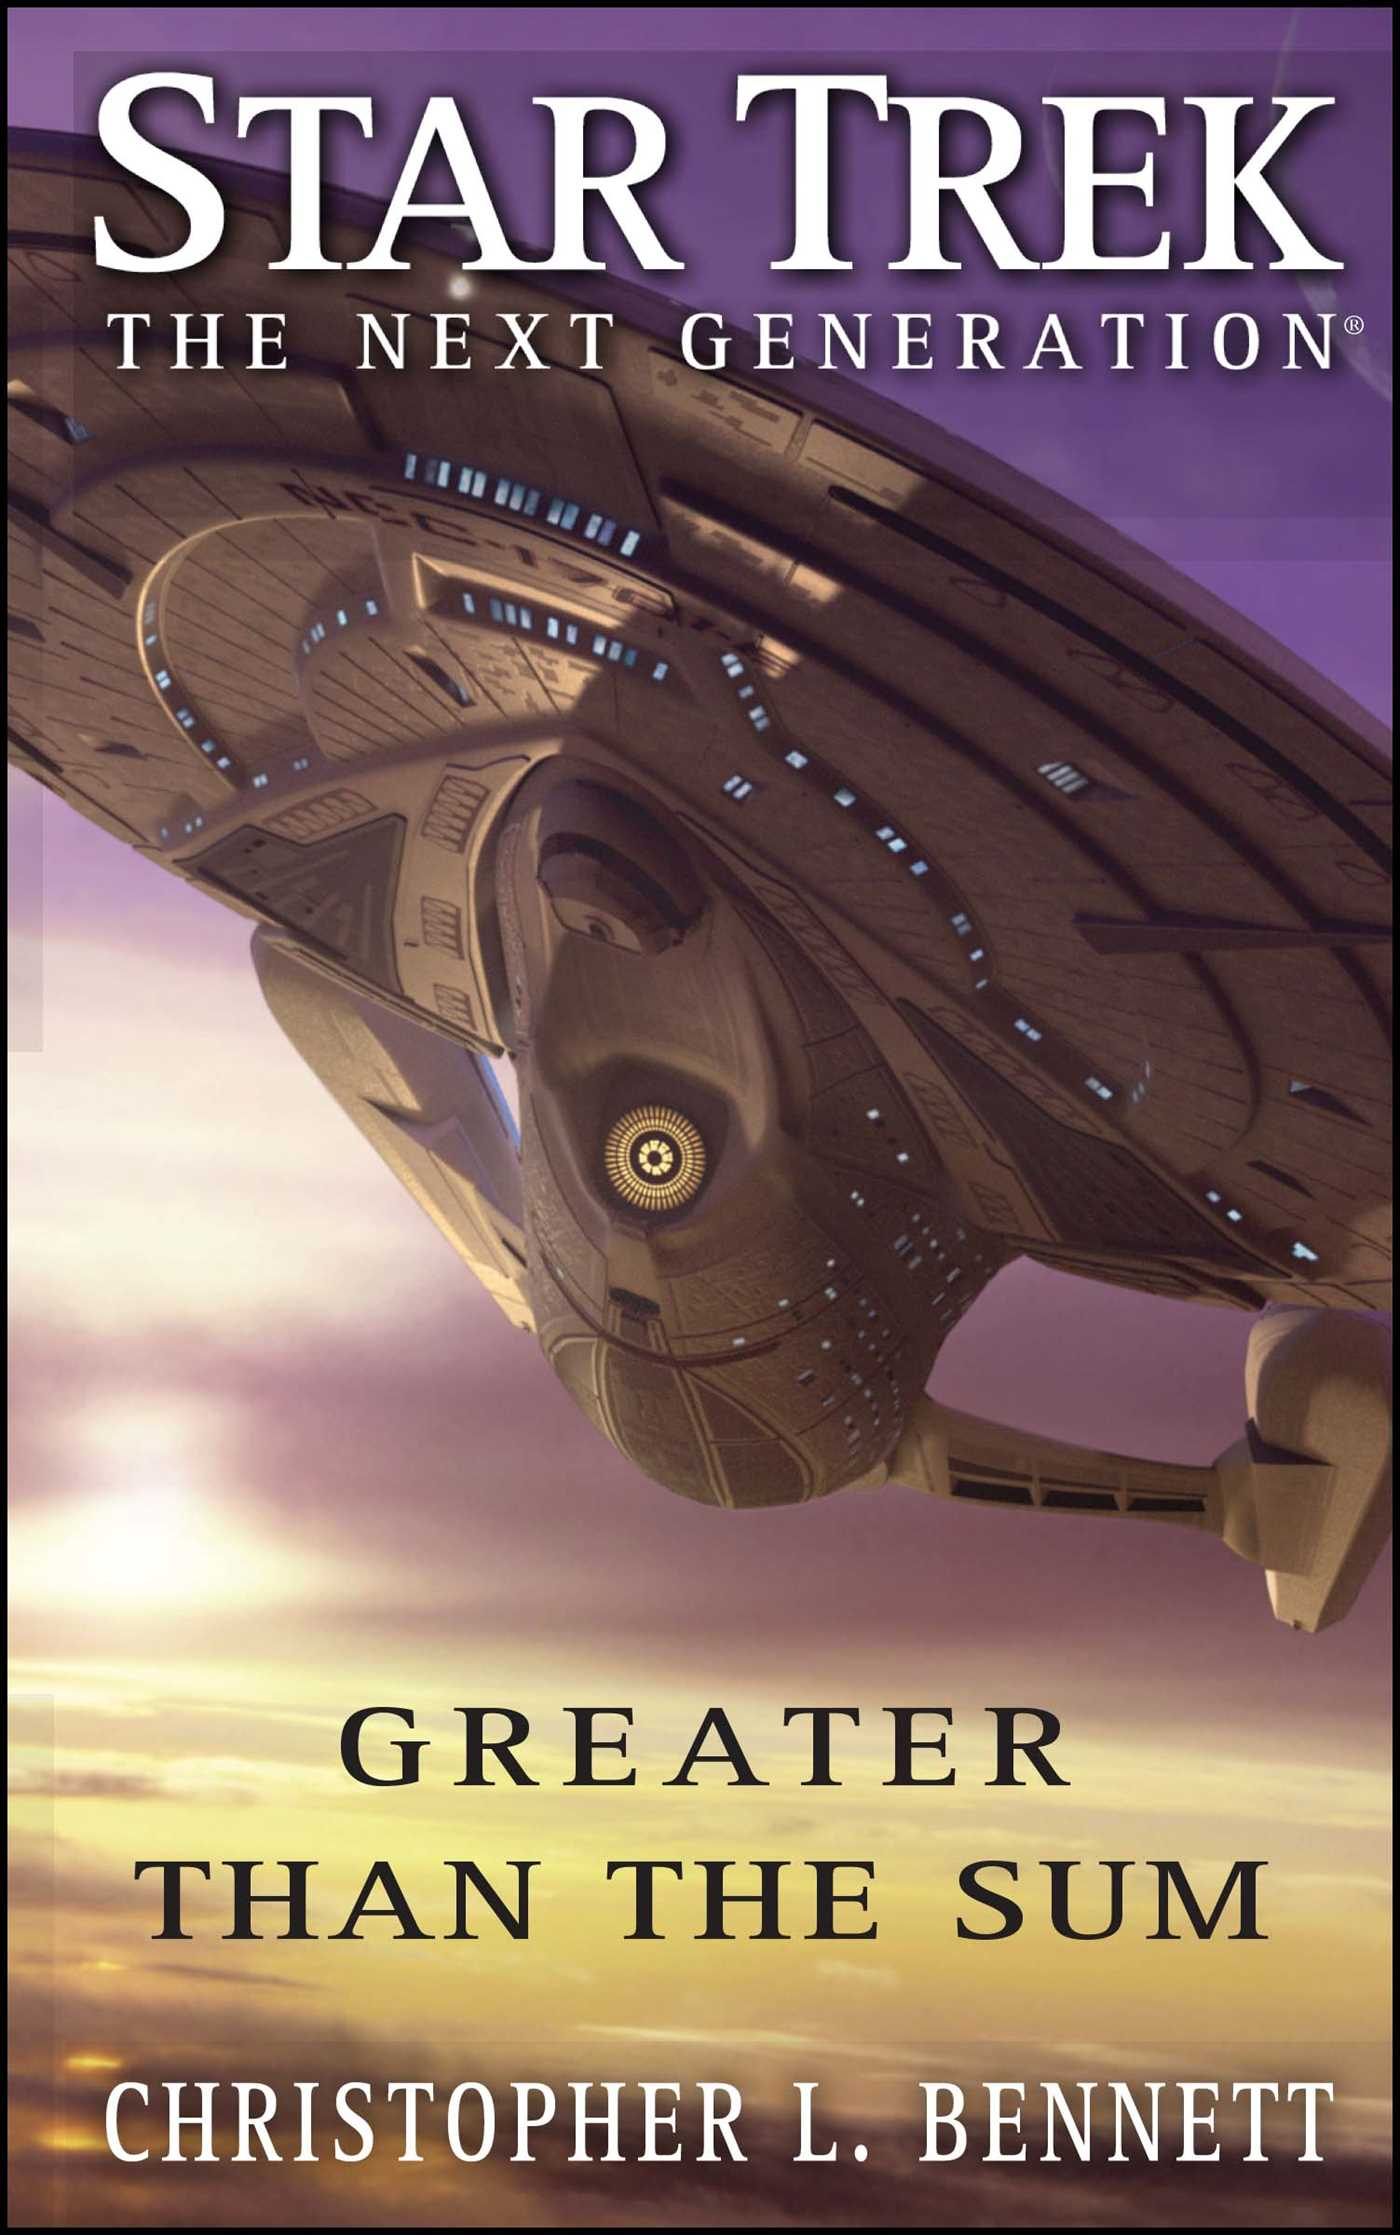 Star trek the next generation greater than the sum 9781501107177 hr